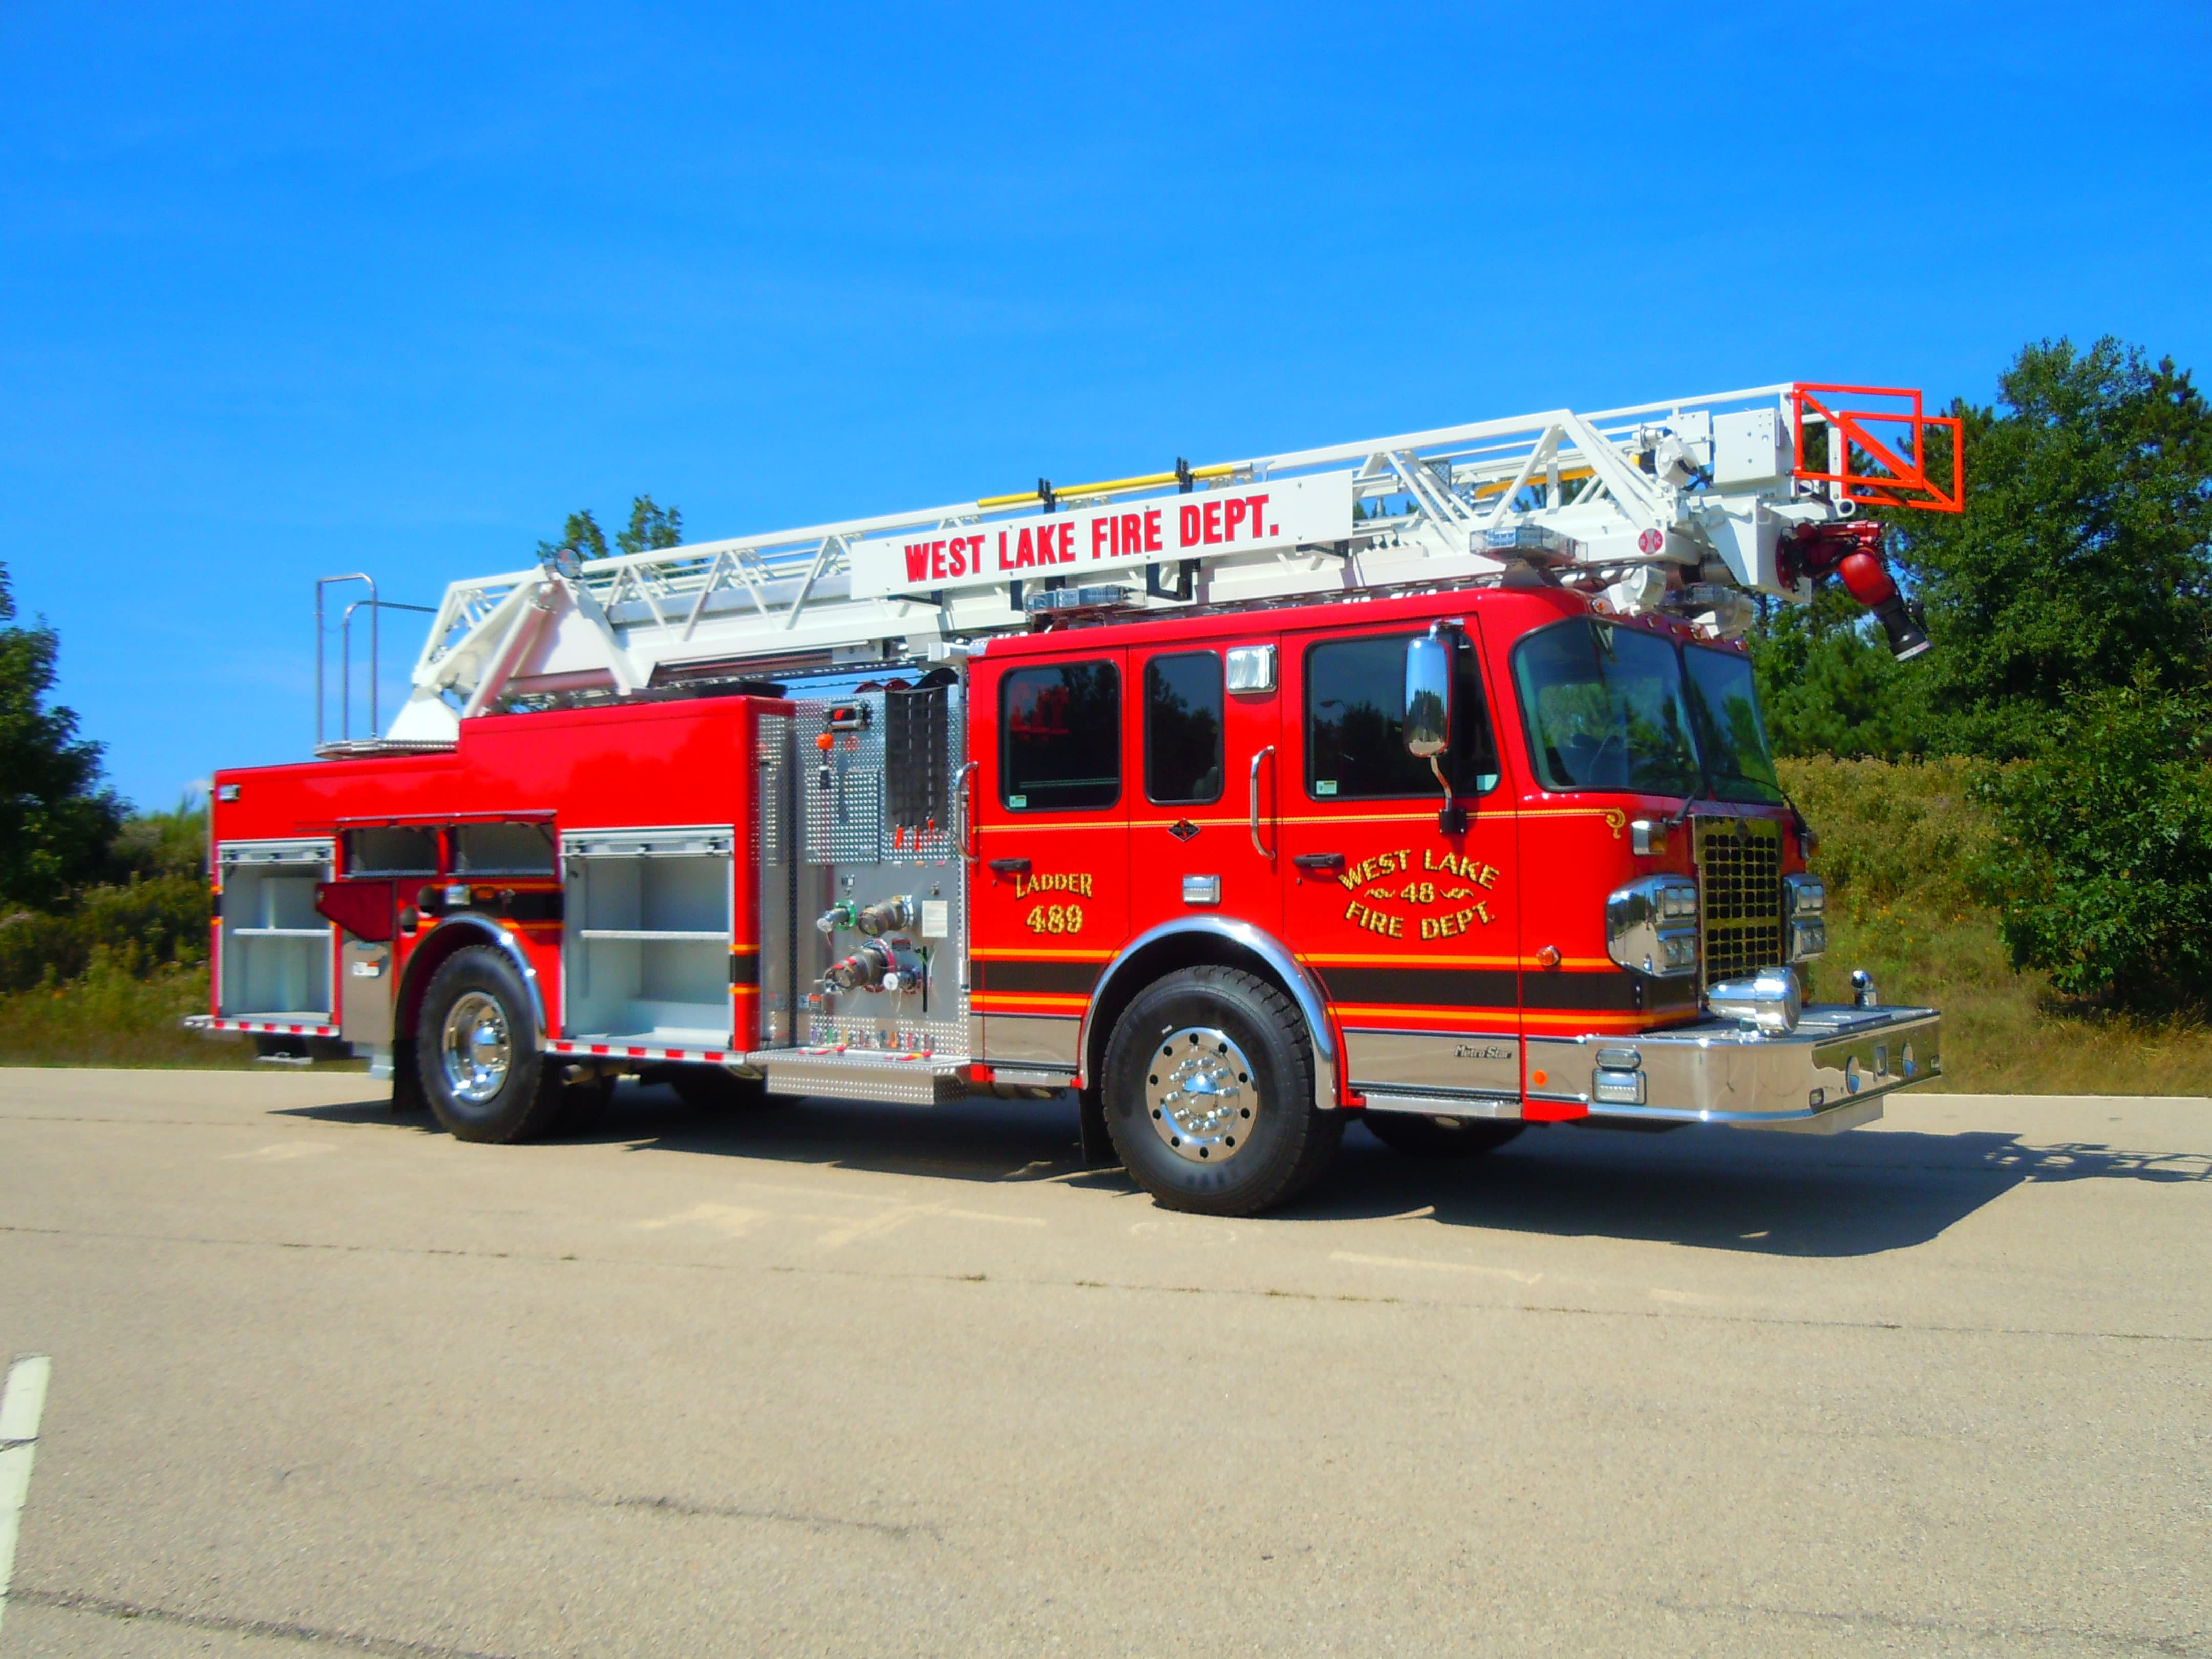 West Lake Fire Department